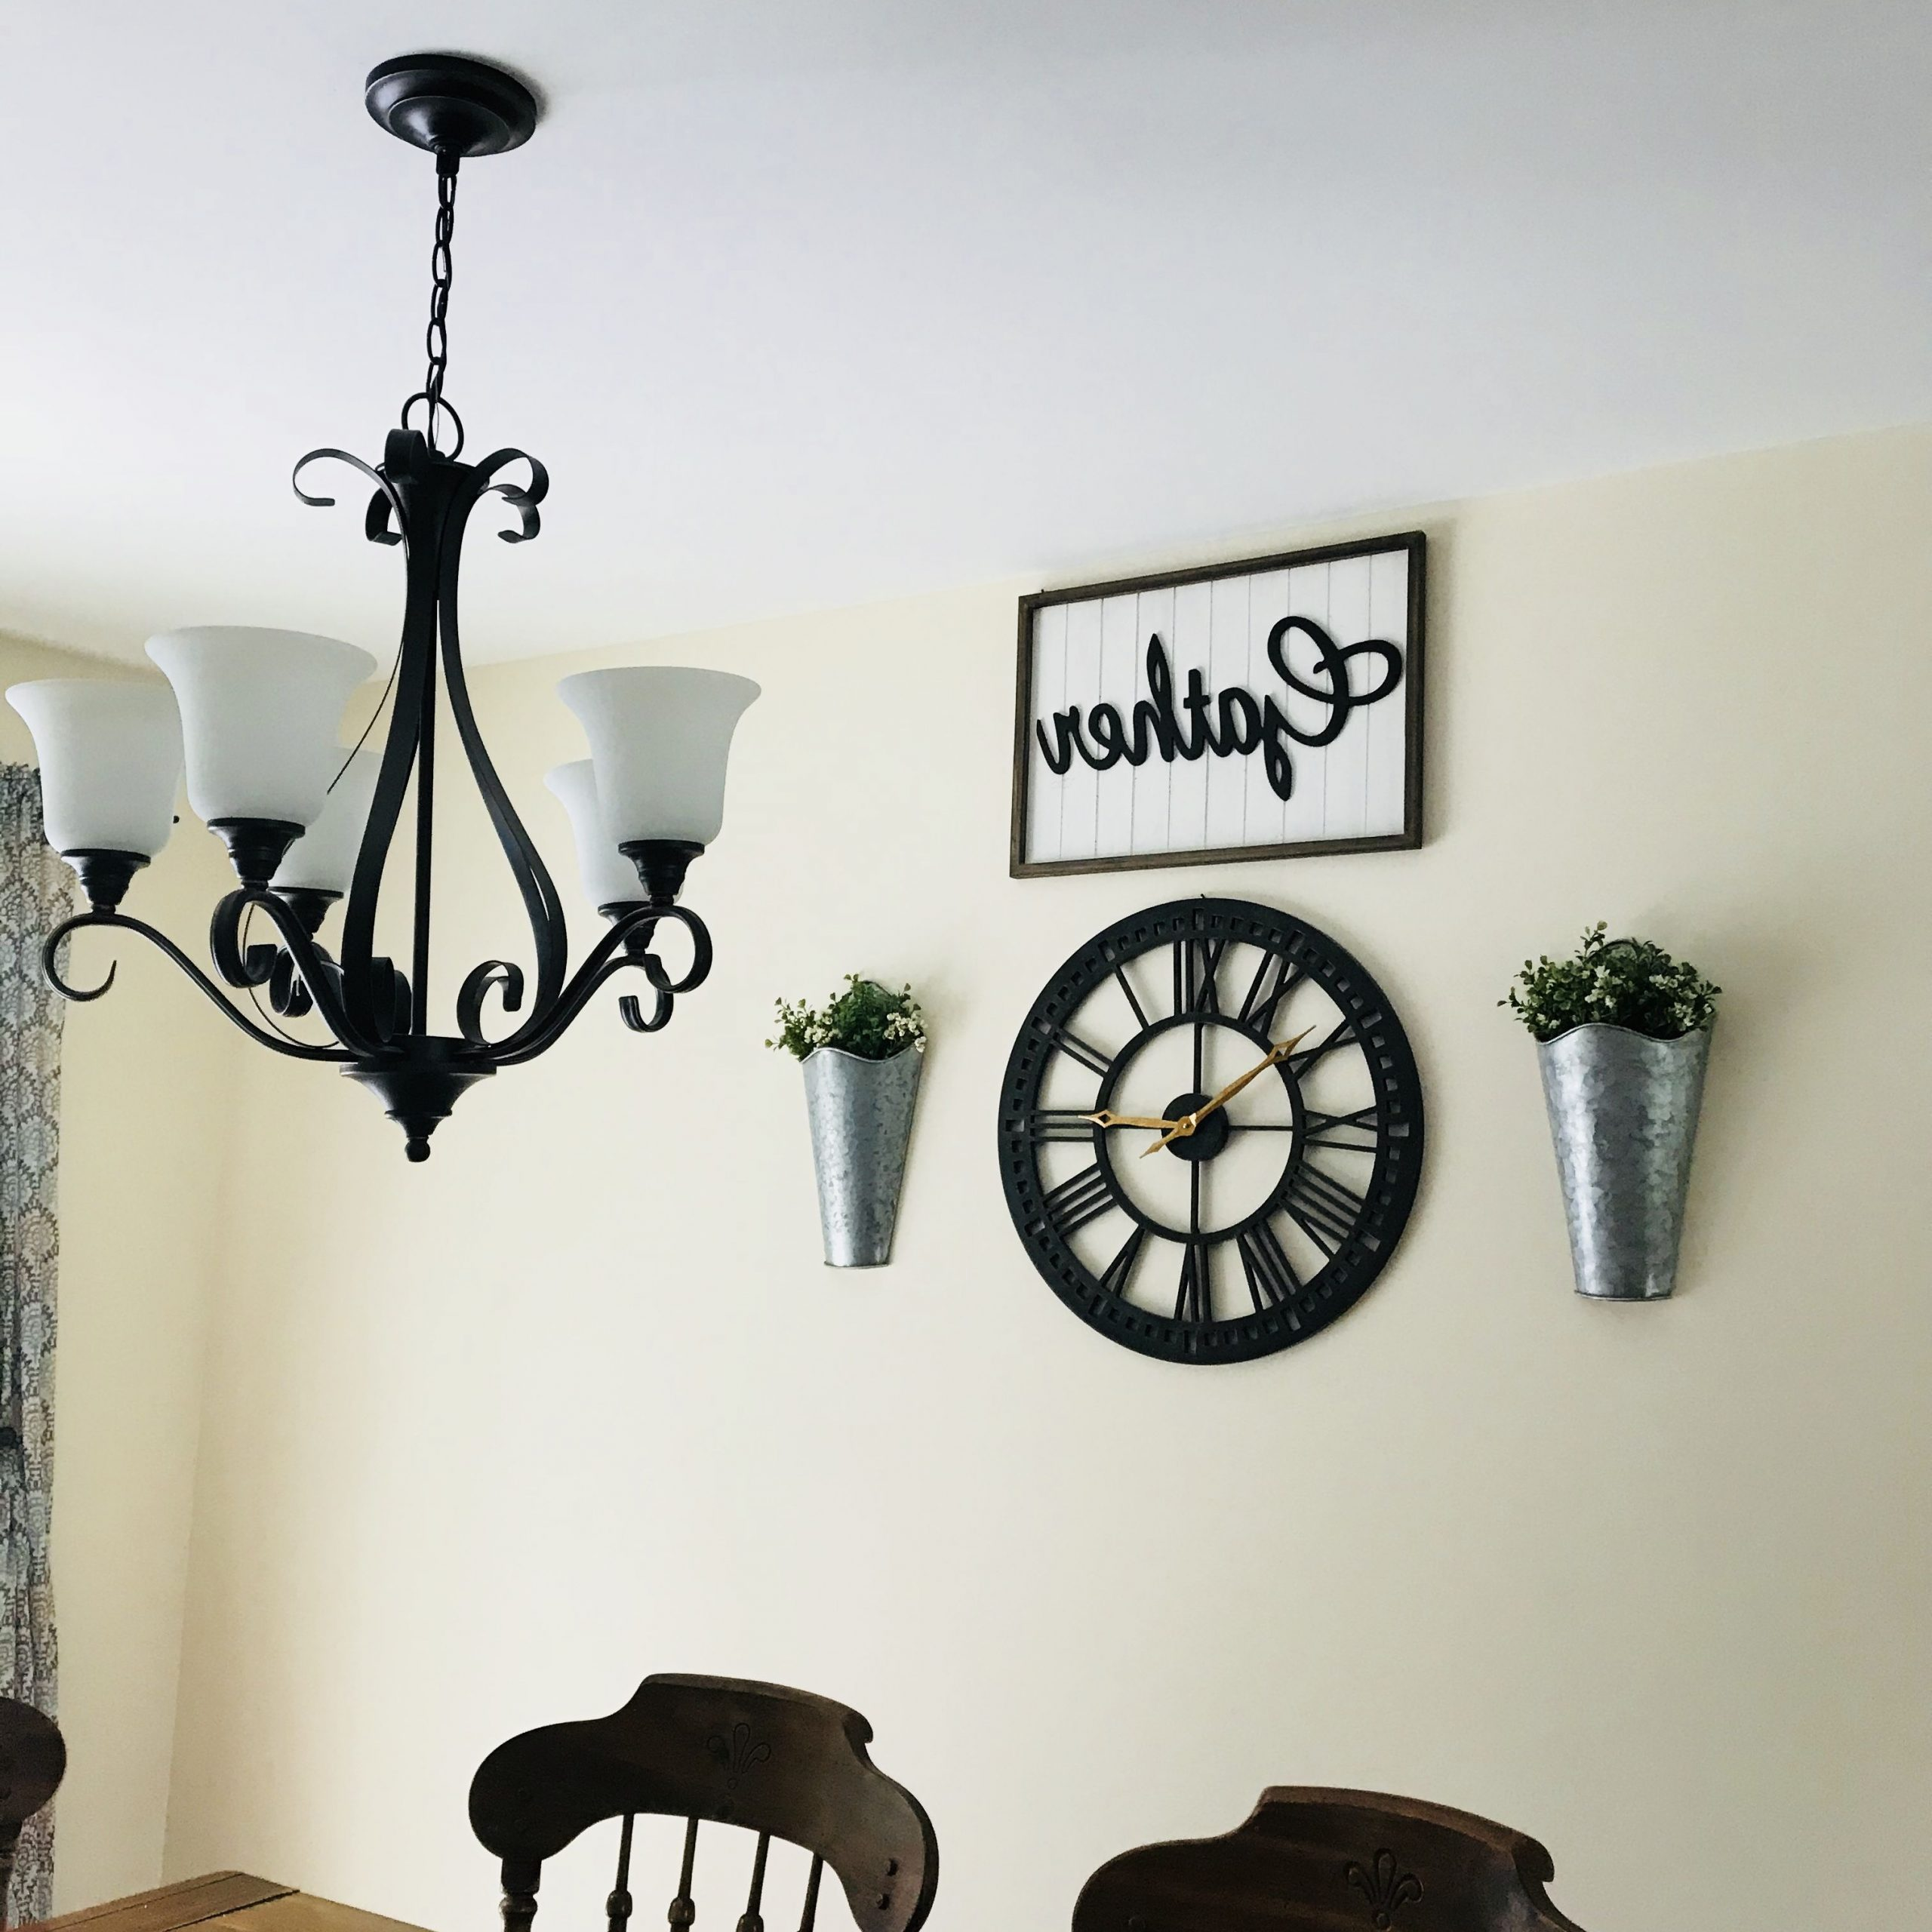 Newest Farmhouse Wall Decor. Gather Sign. Wall Clock (View 12 of 20)